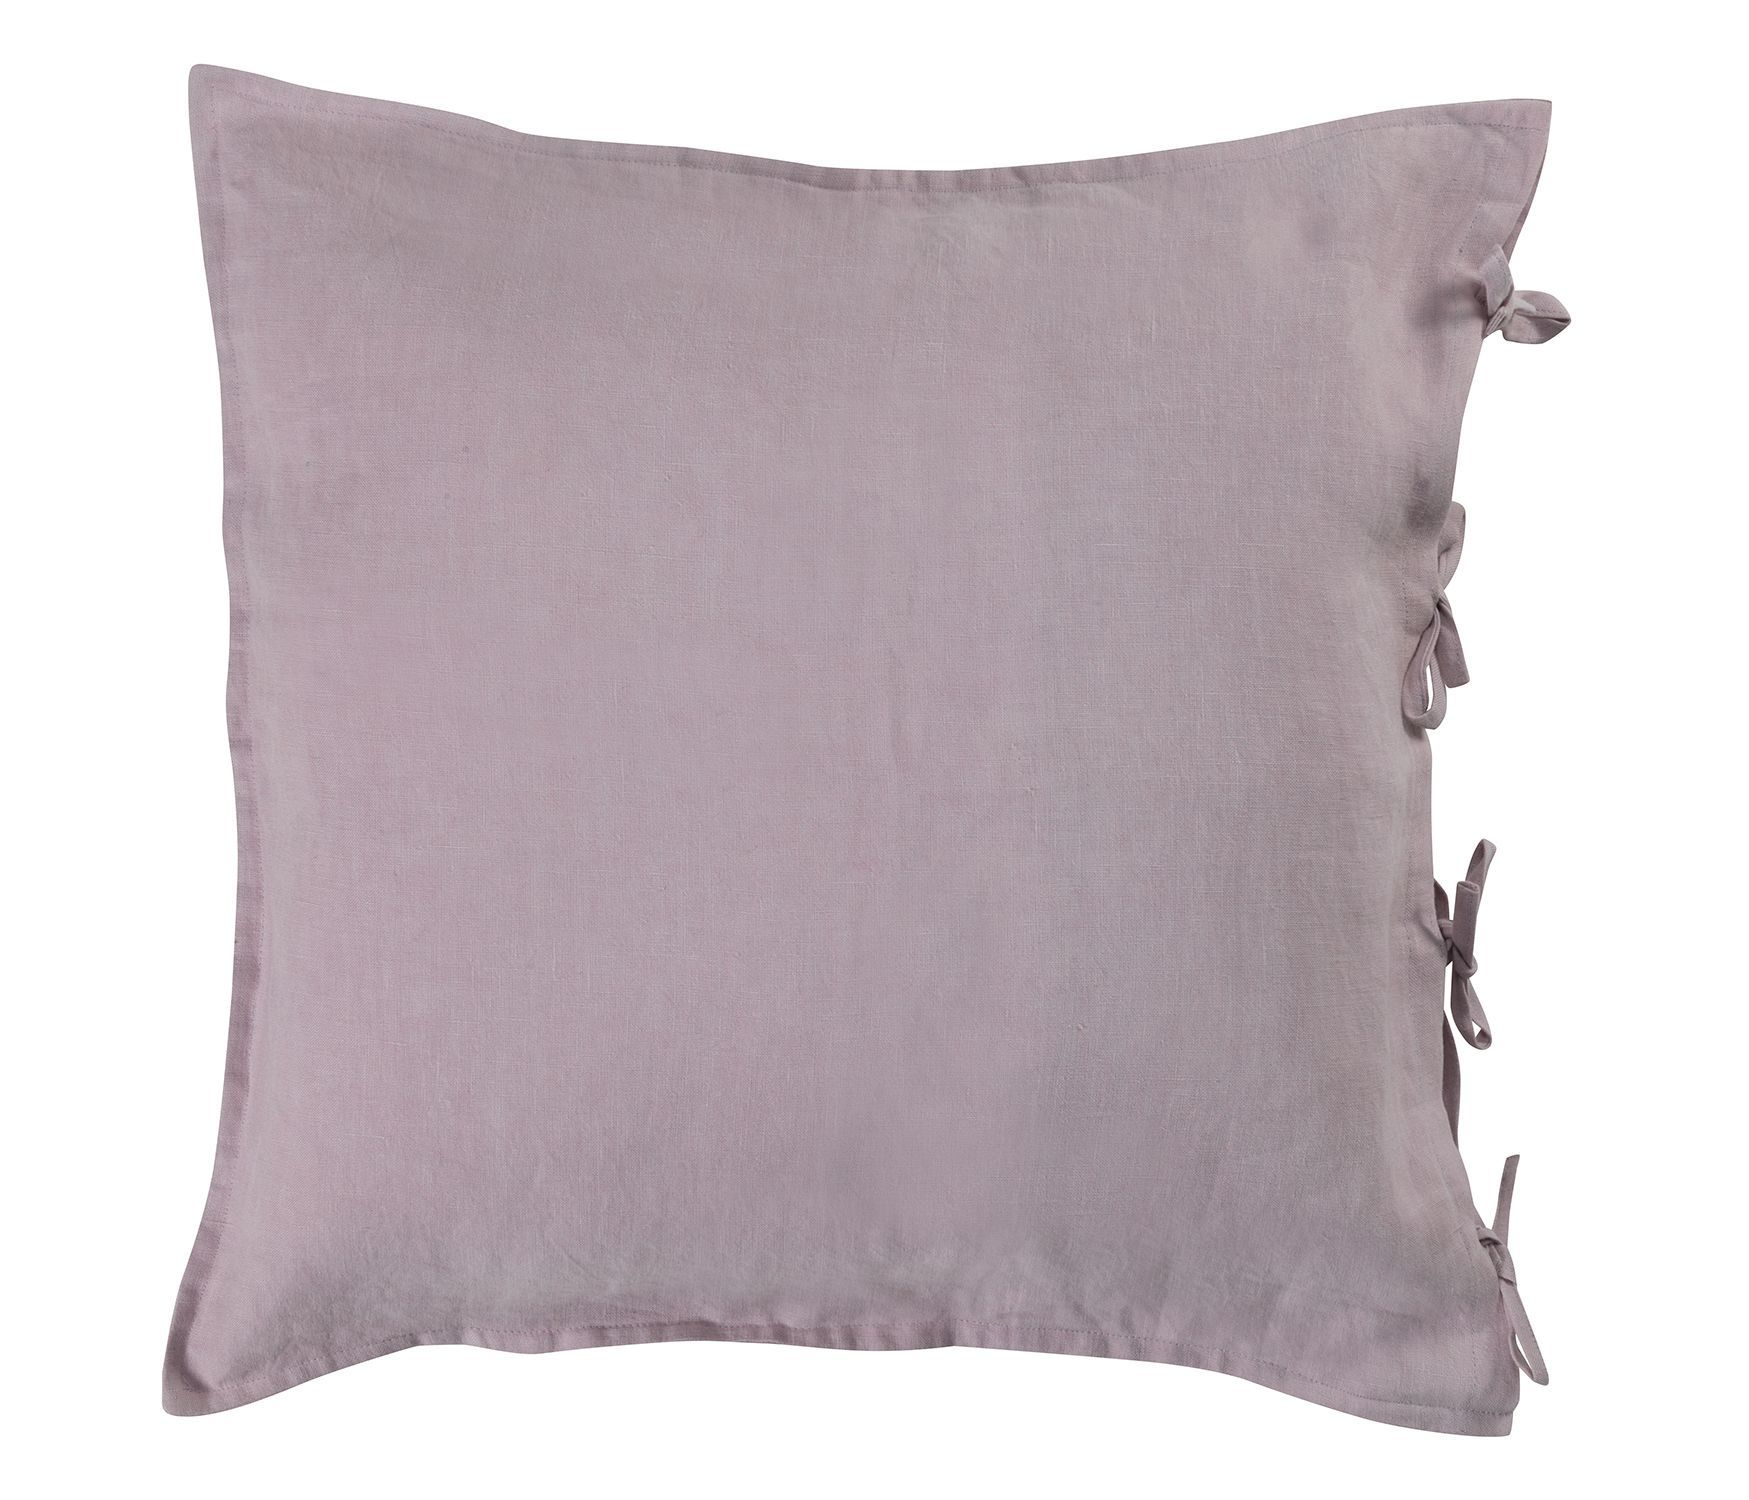 Blush oversized linen cushion